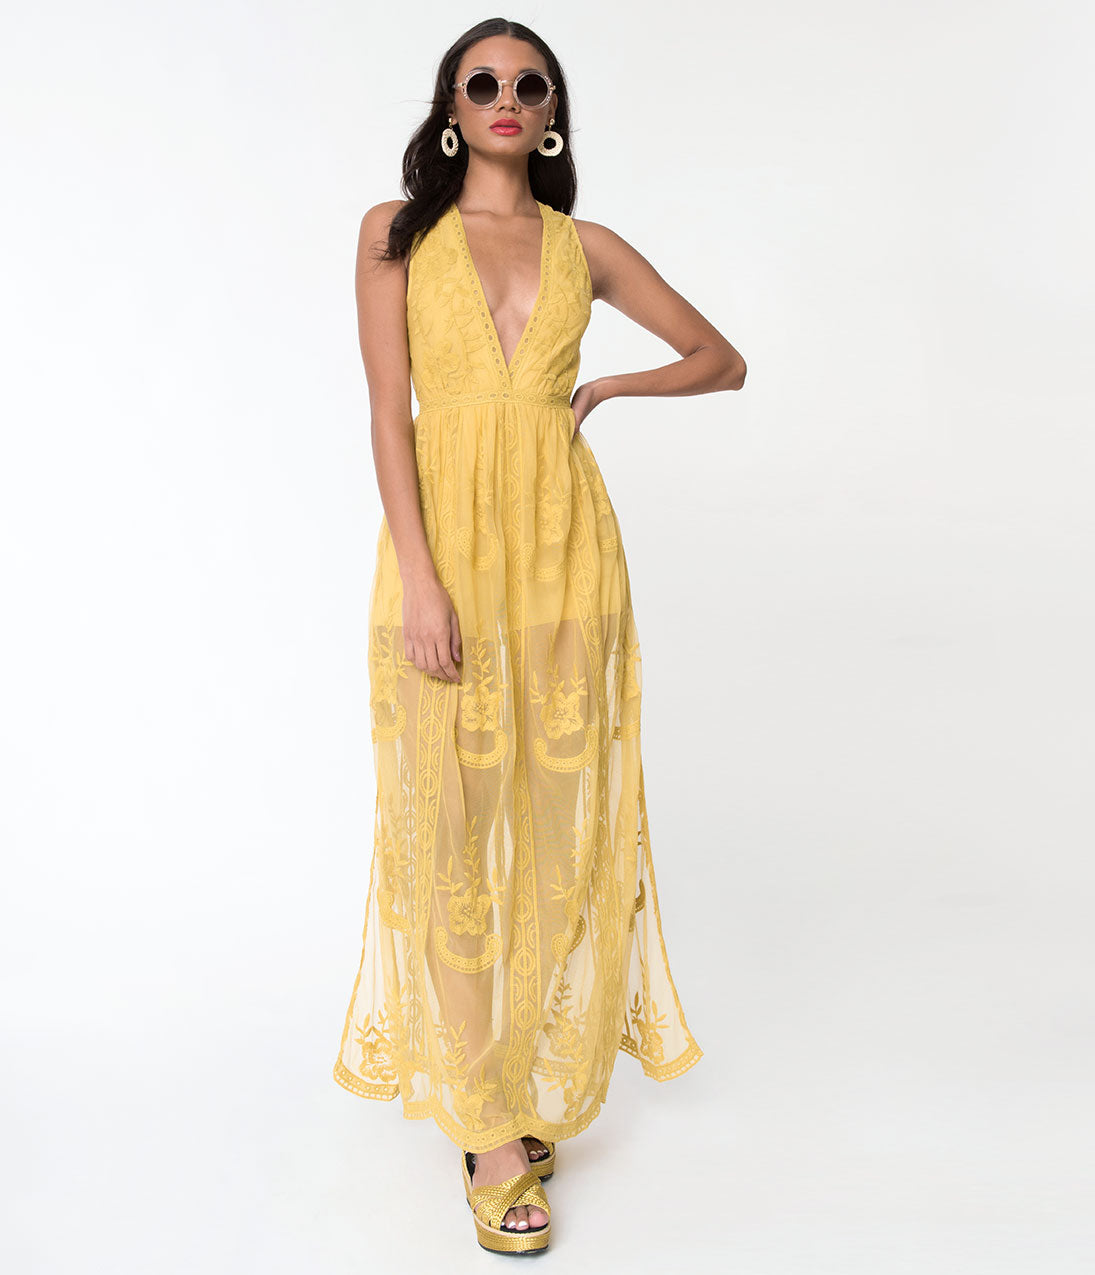 500 Vintage Style Dresses for Sale Retro Style Mustard Yellow Mesh  Lace Floral Sleeveless Maxi Dress $68.00 AT vintagedancer.com